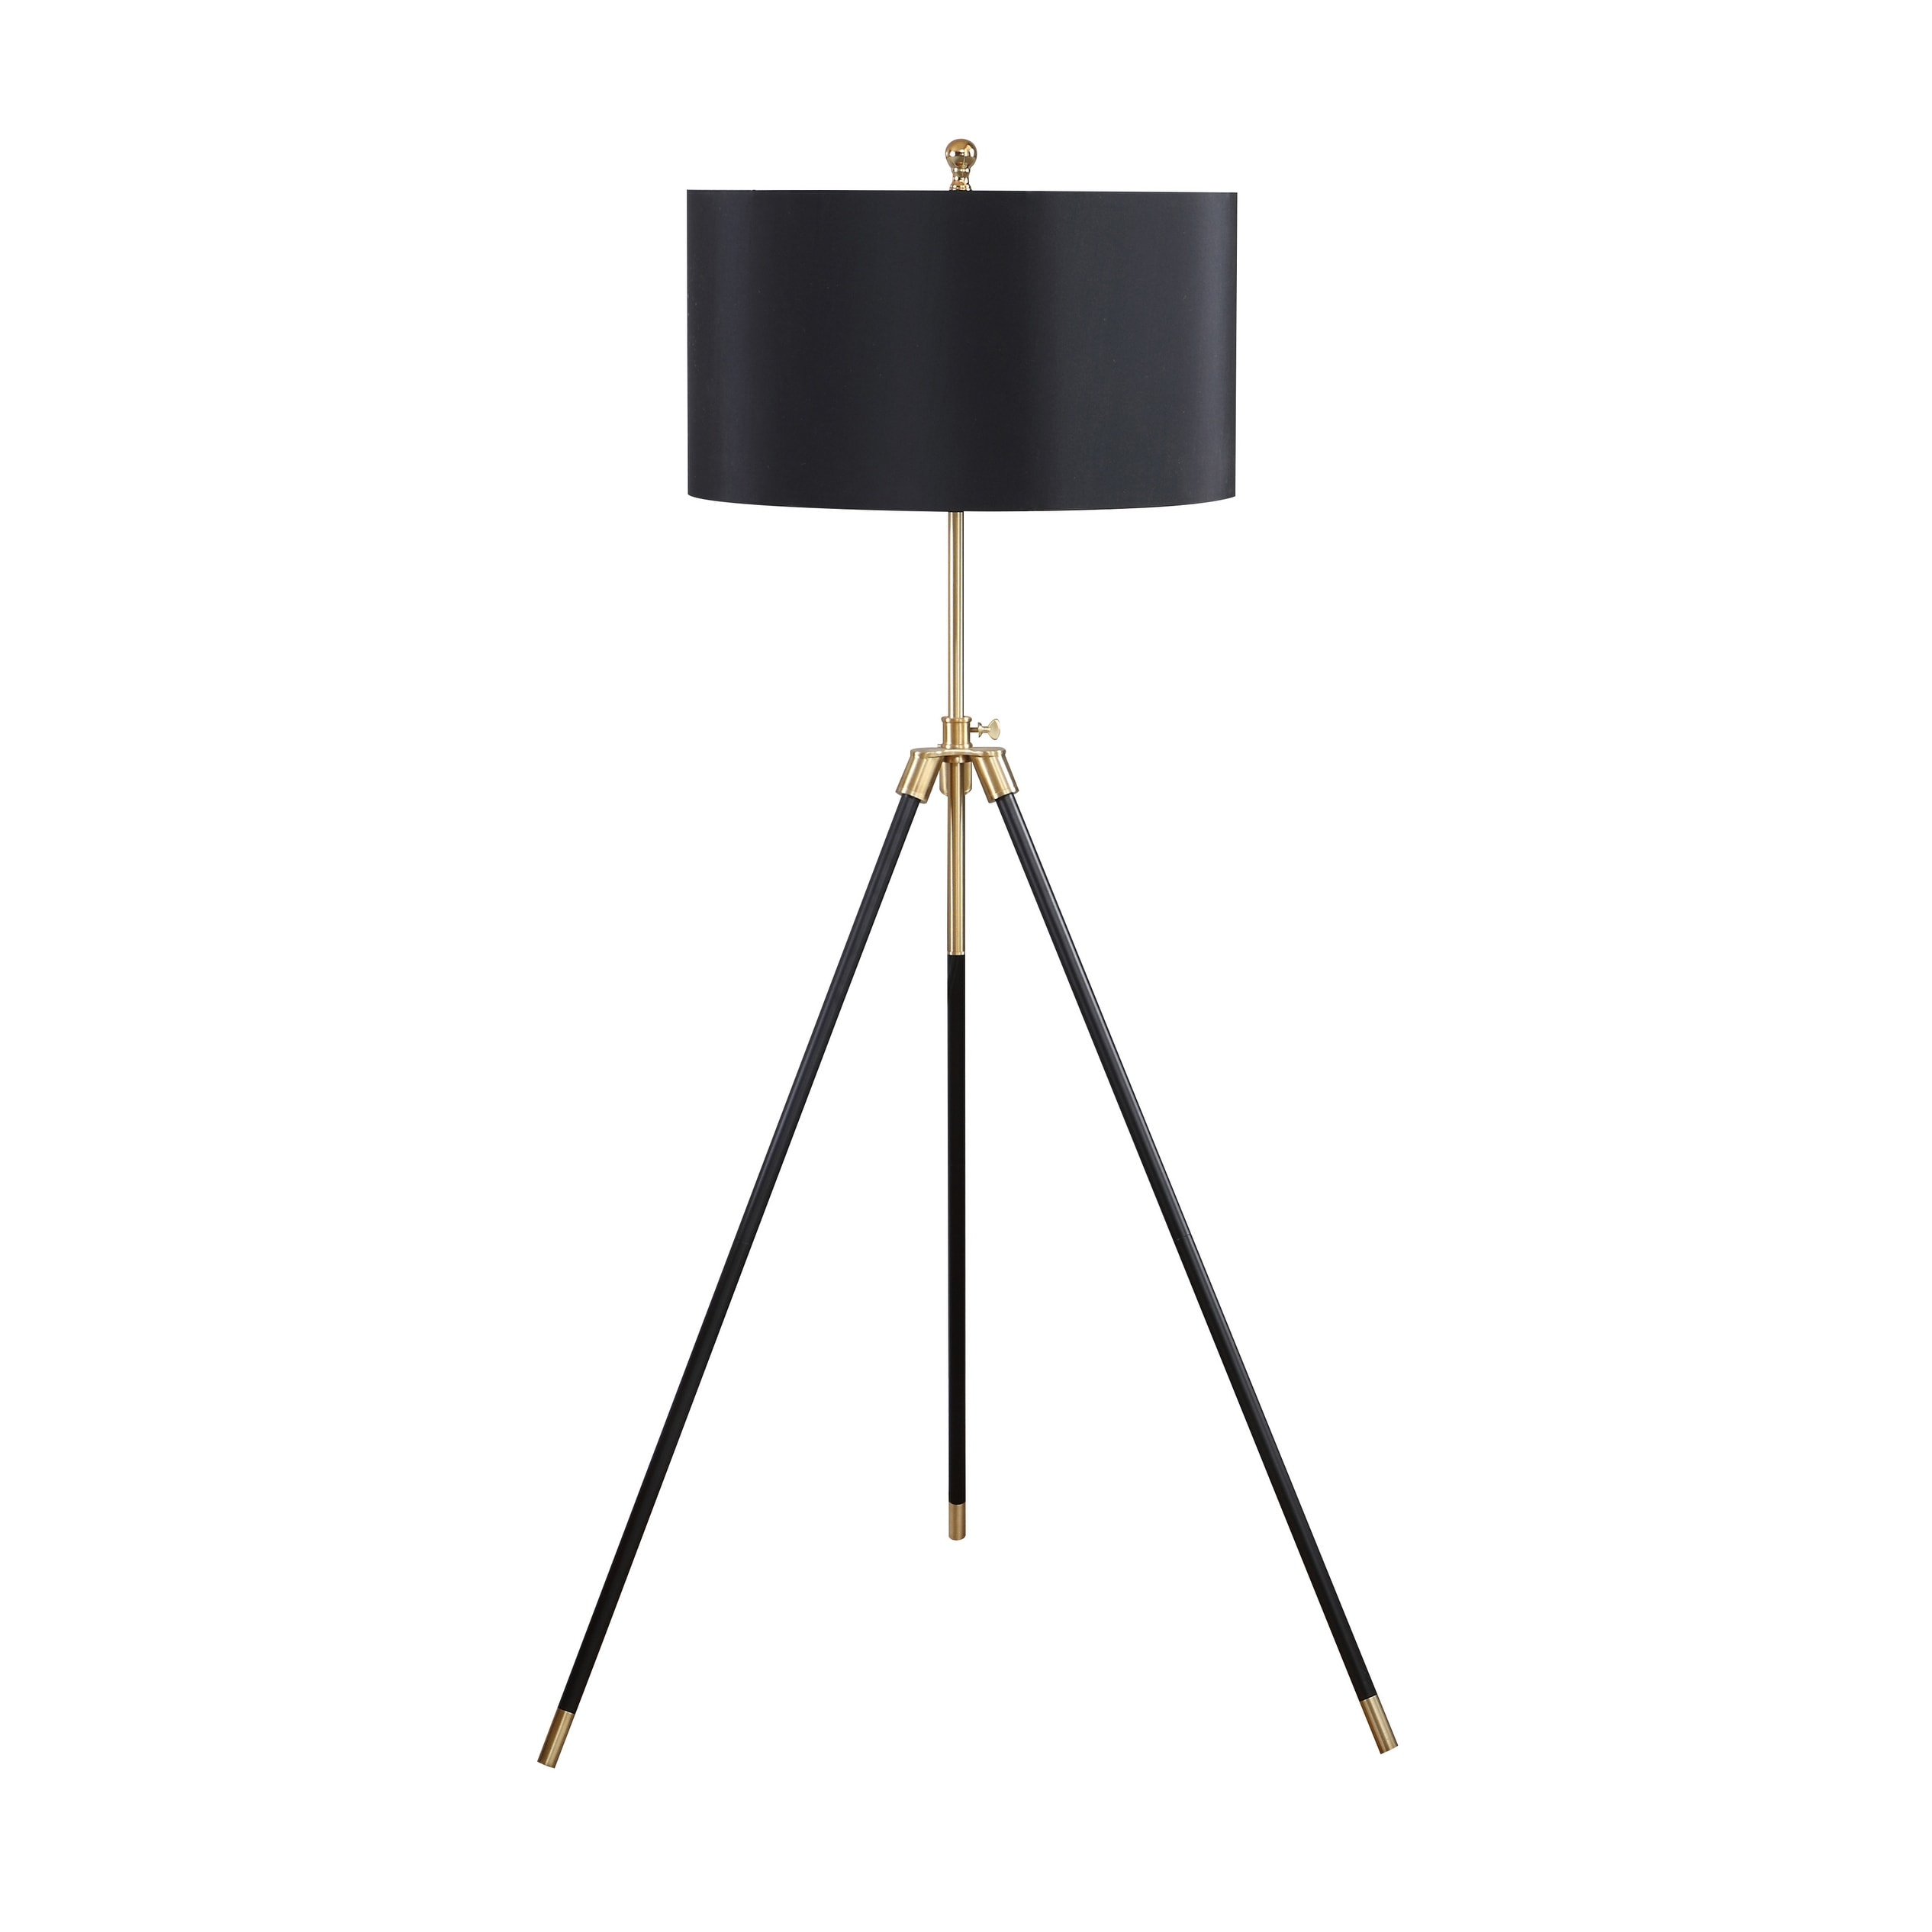 Shop Black And Gold Tripod Floor Lamp Overstock 32247762